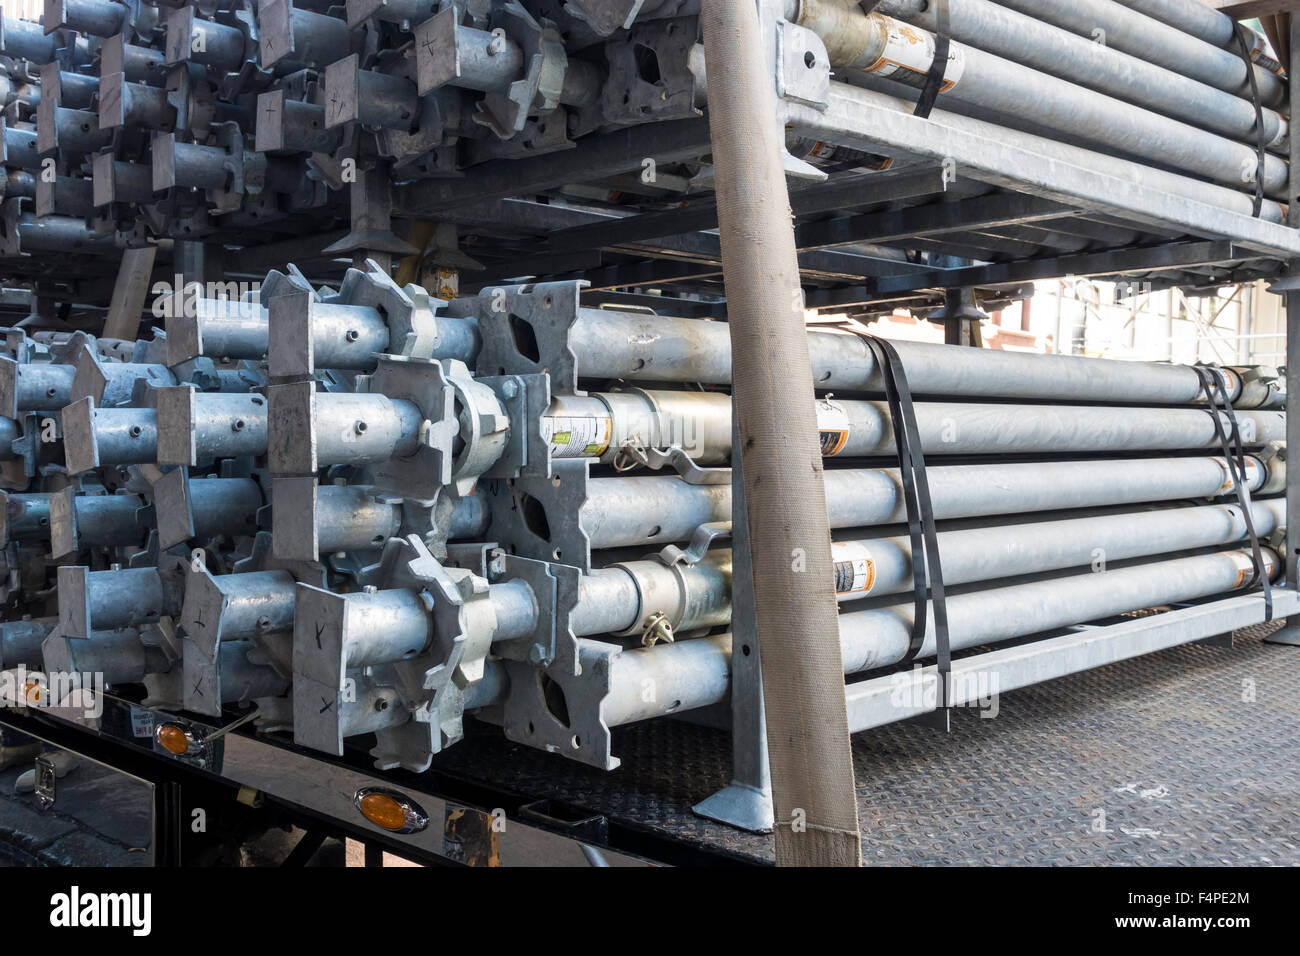 Tubular steel adjustable length props on a truck near a building site - Stock Image